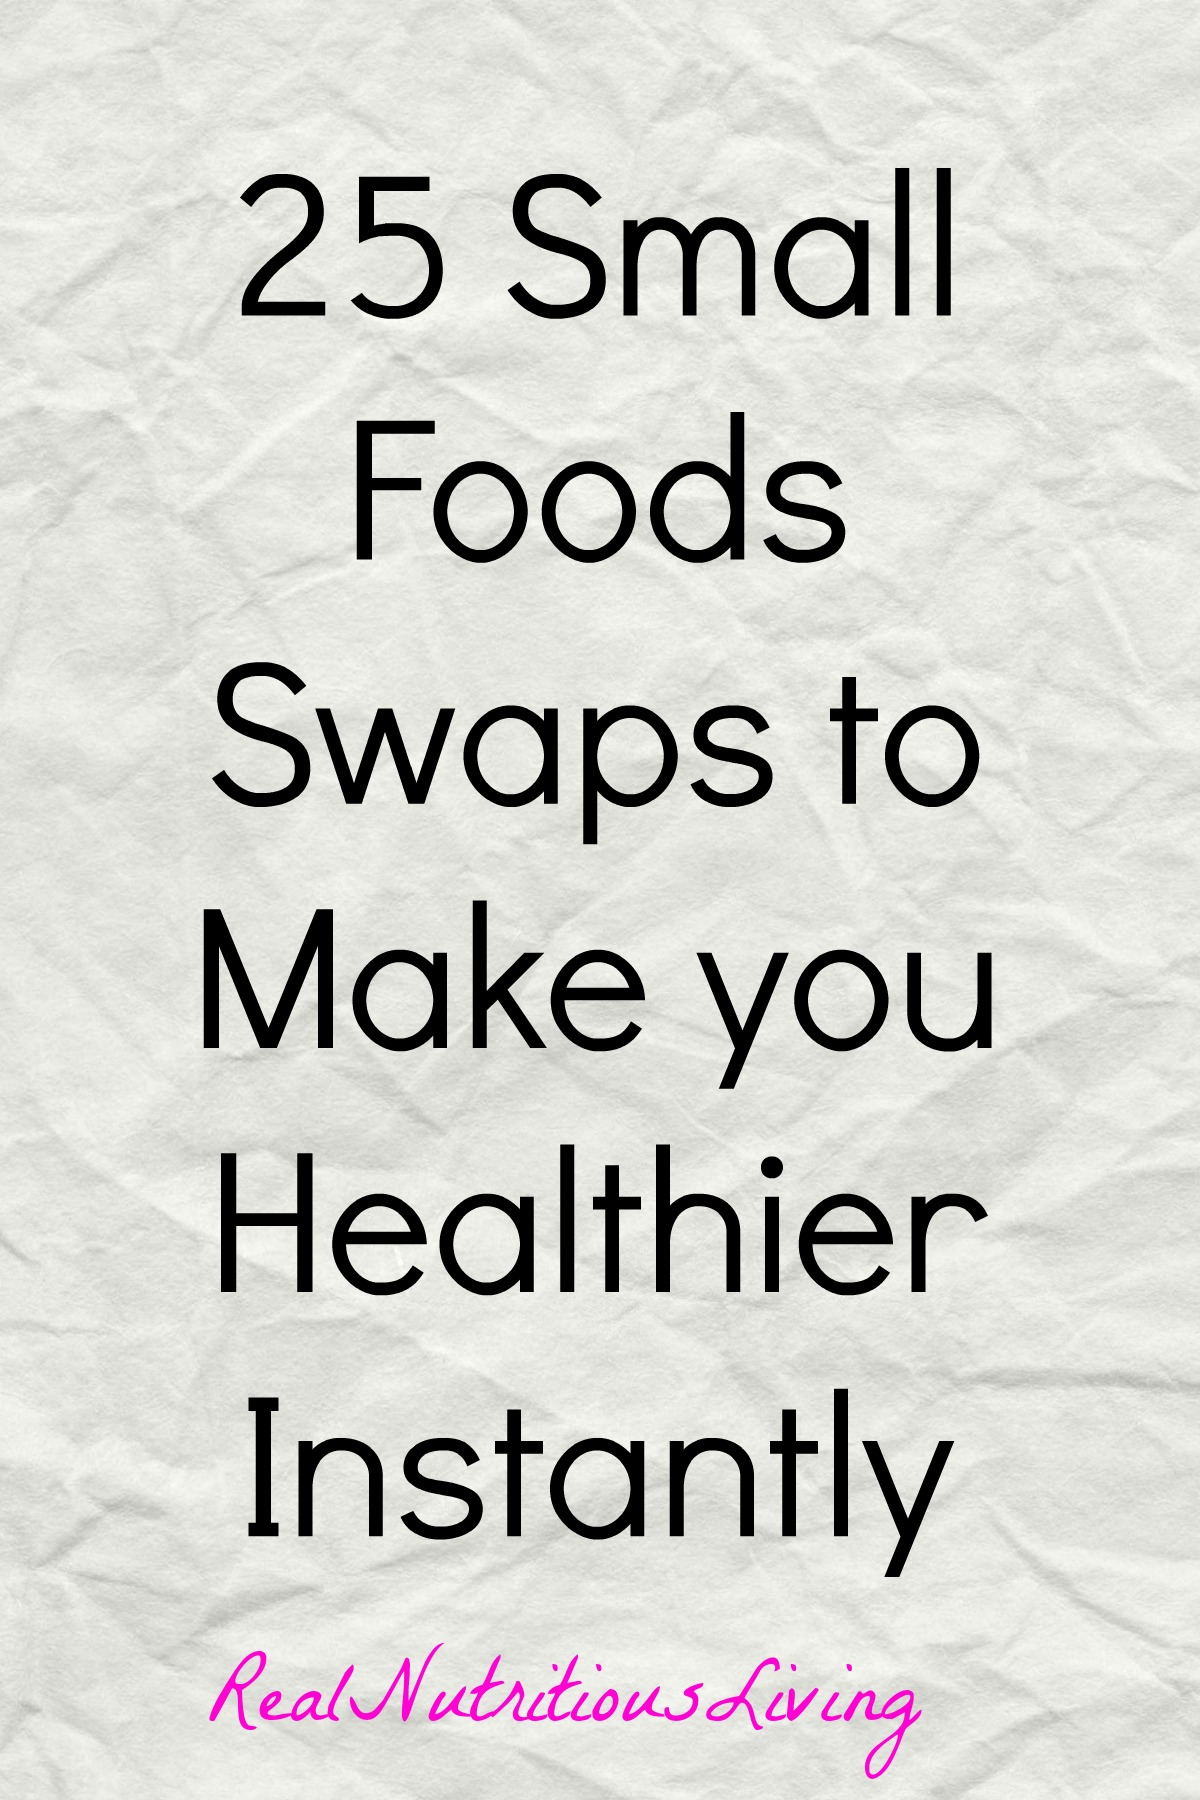 25 Small Food Swaps to Make You Healthier Instantly